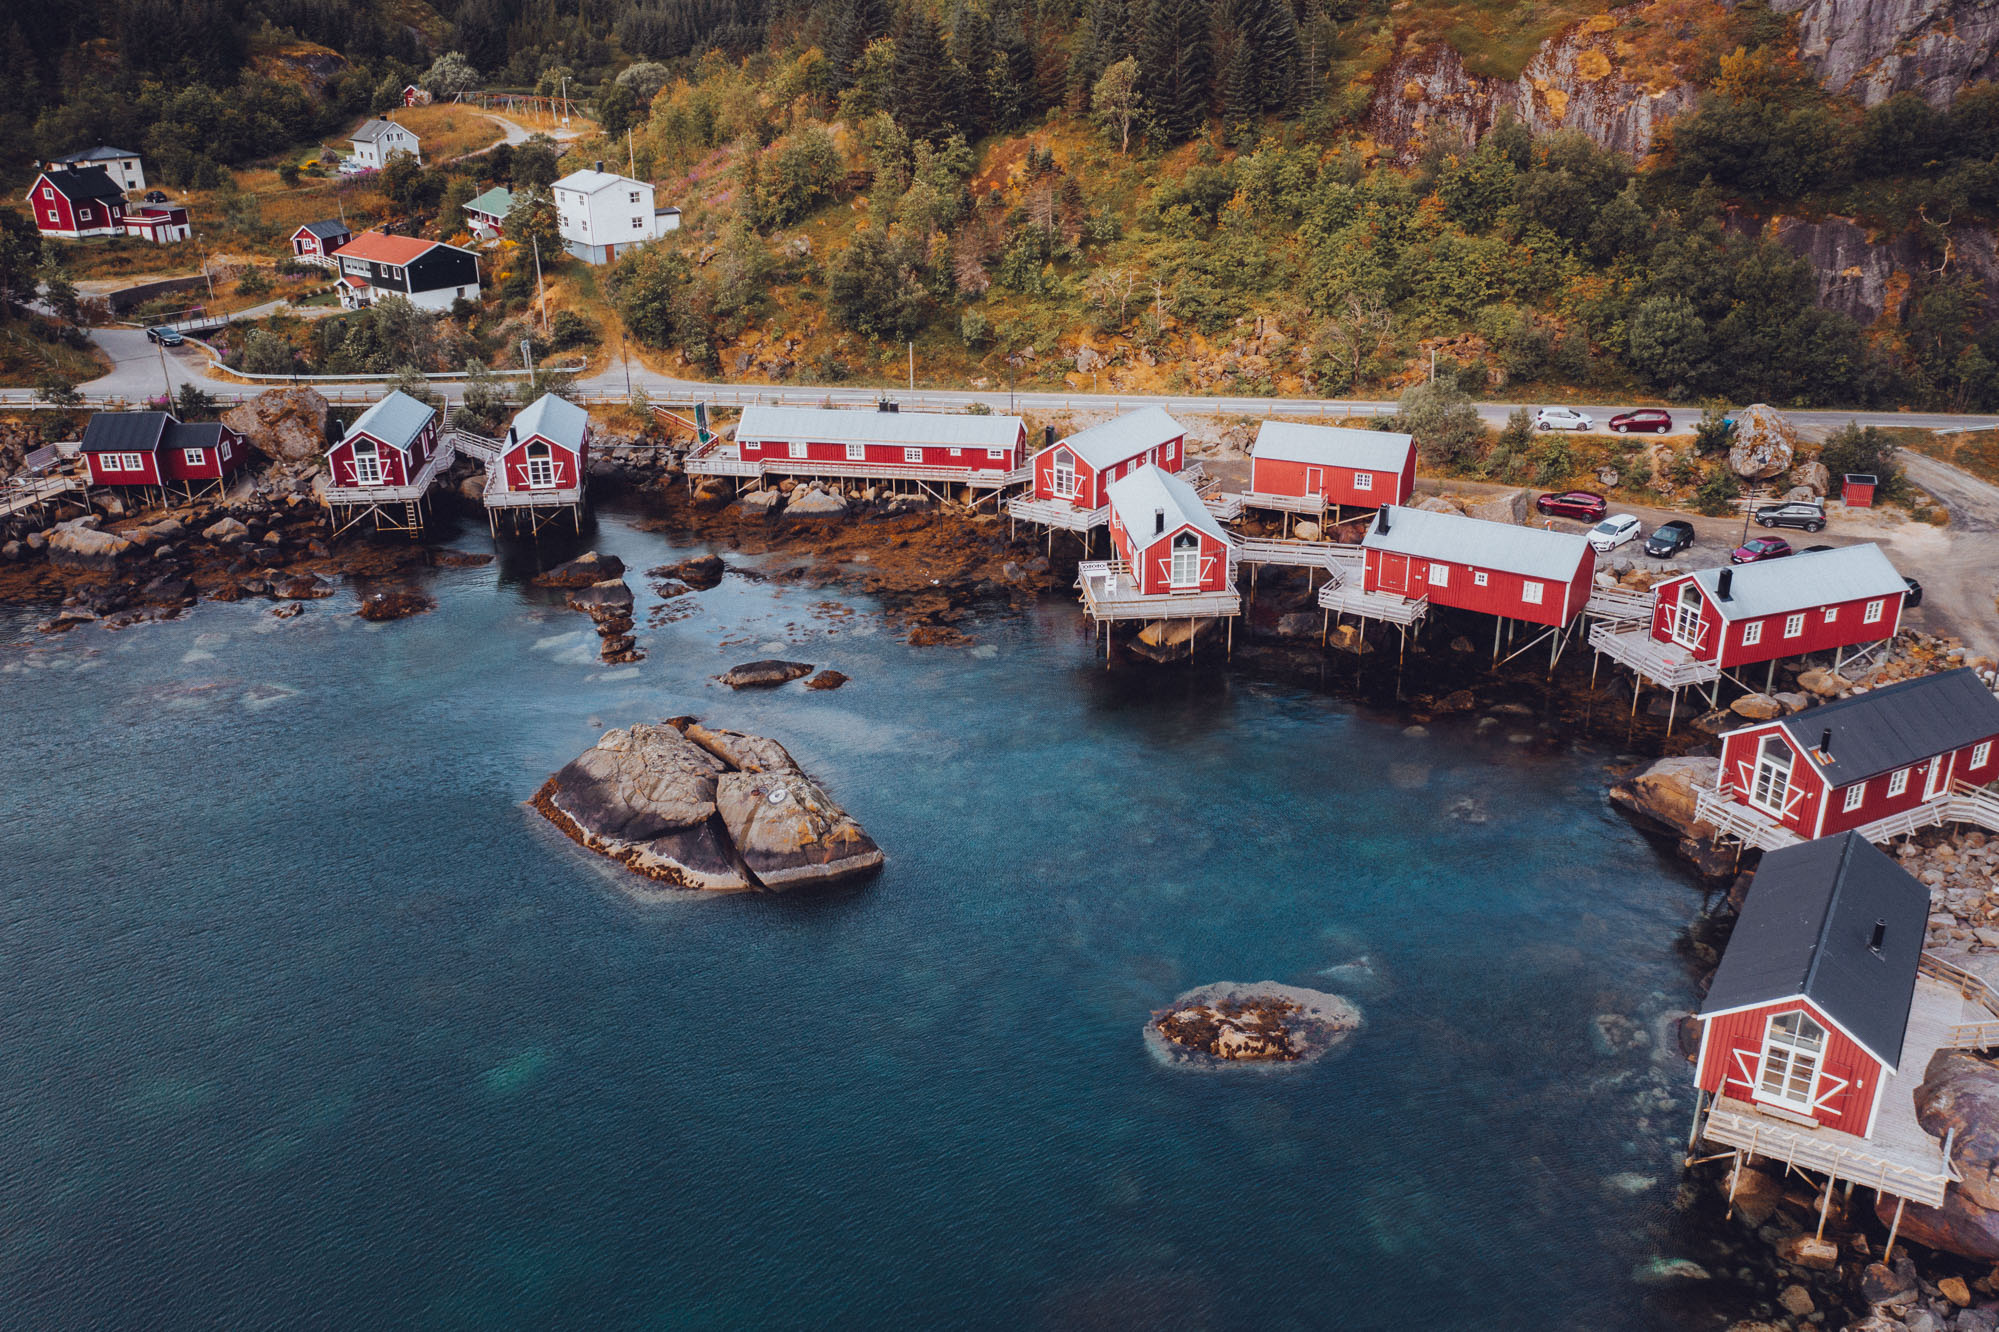 Drone photo of Nusfjord town in Lofoten Norway